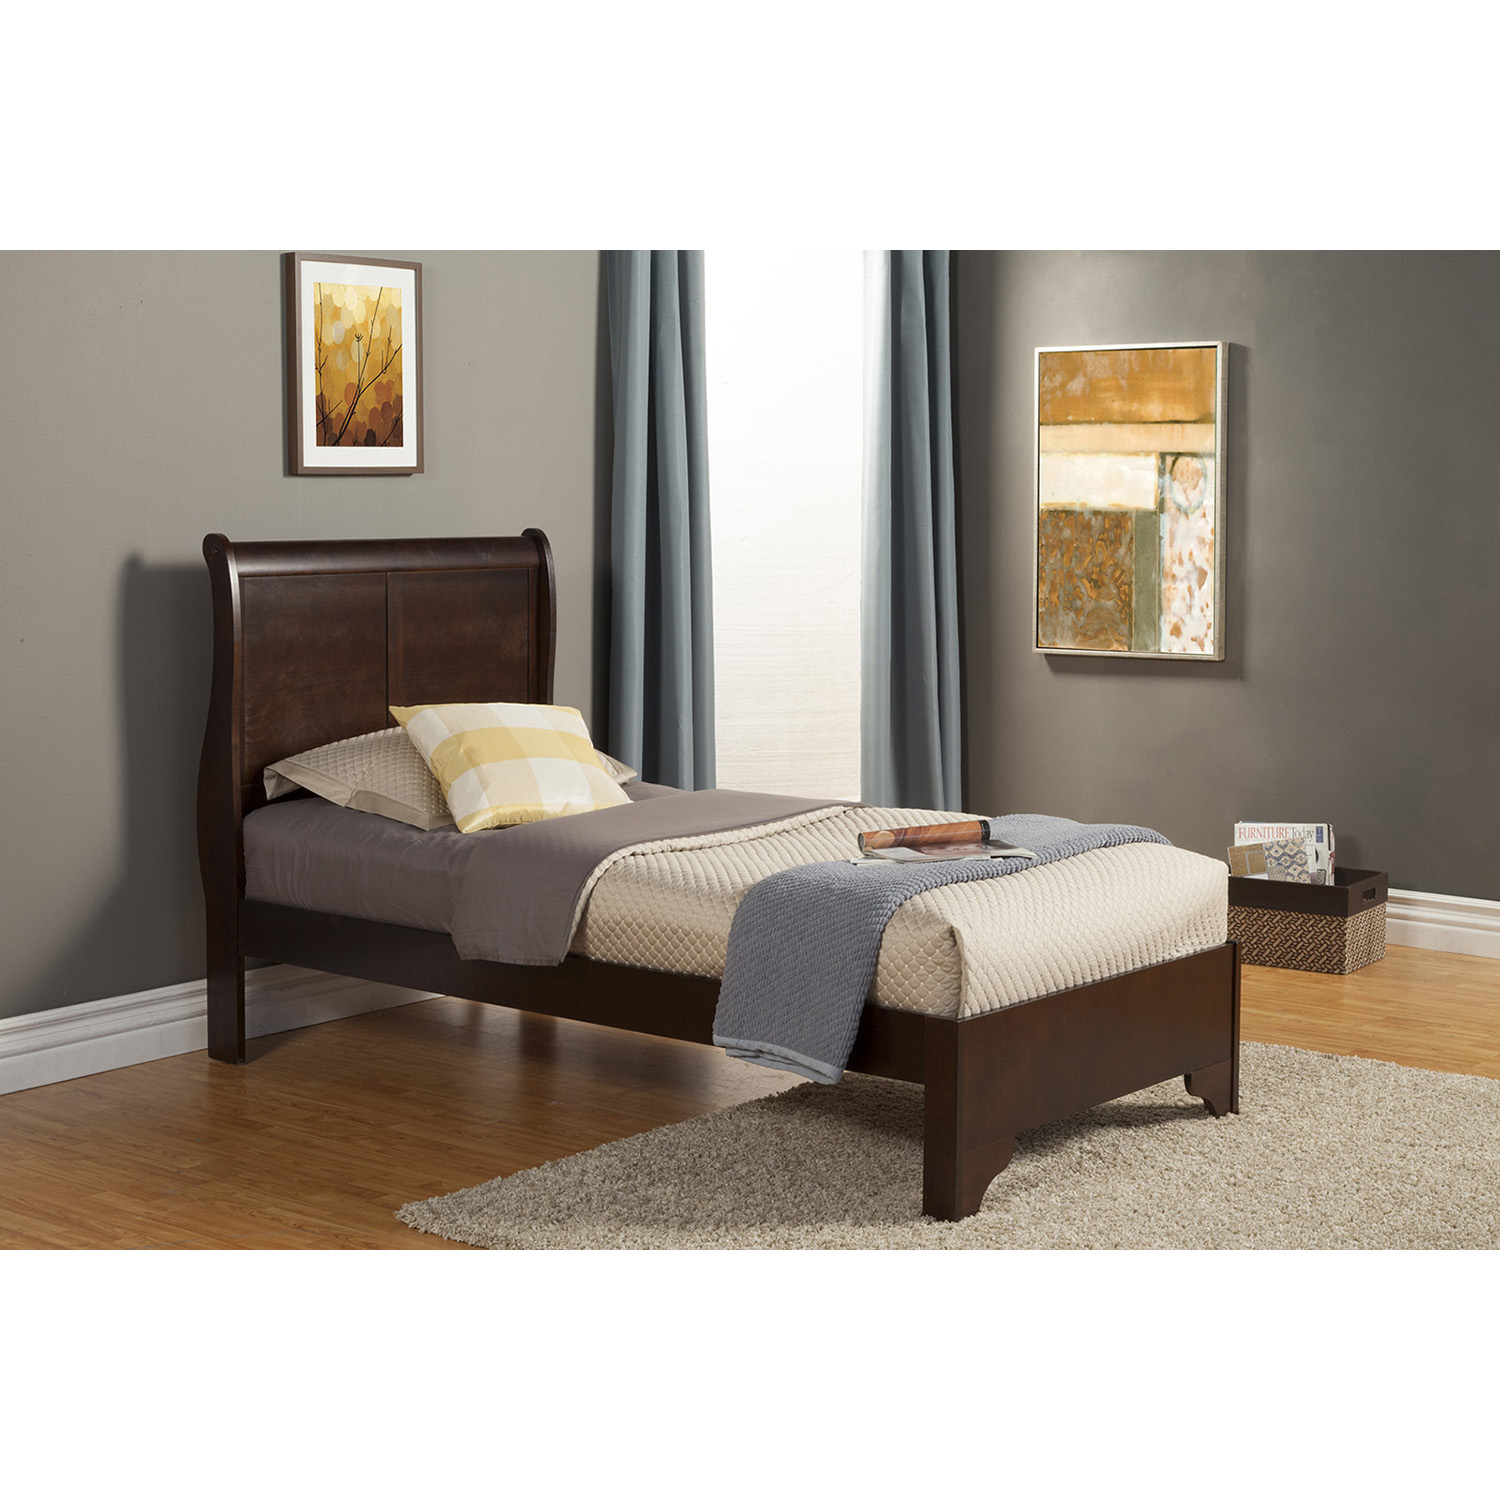 west haven twin sleigh bed cappuccino - Twin Sleigh Bed